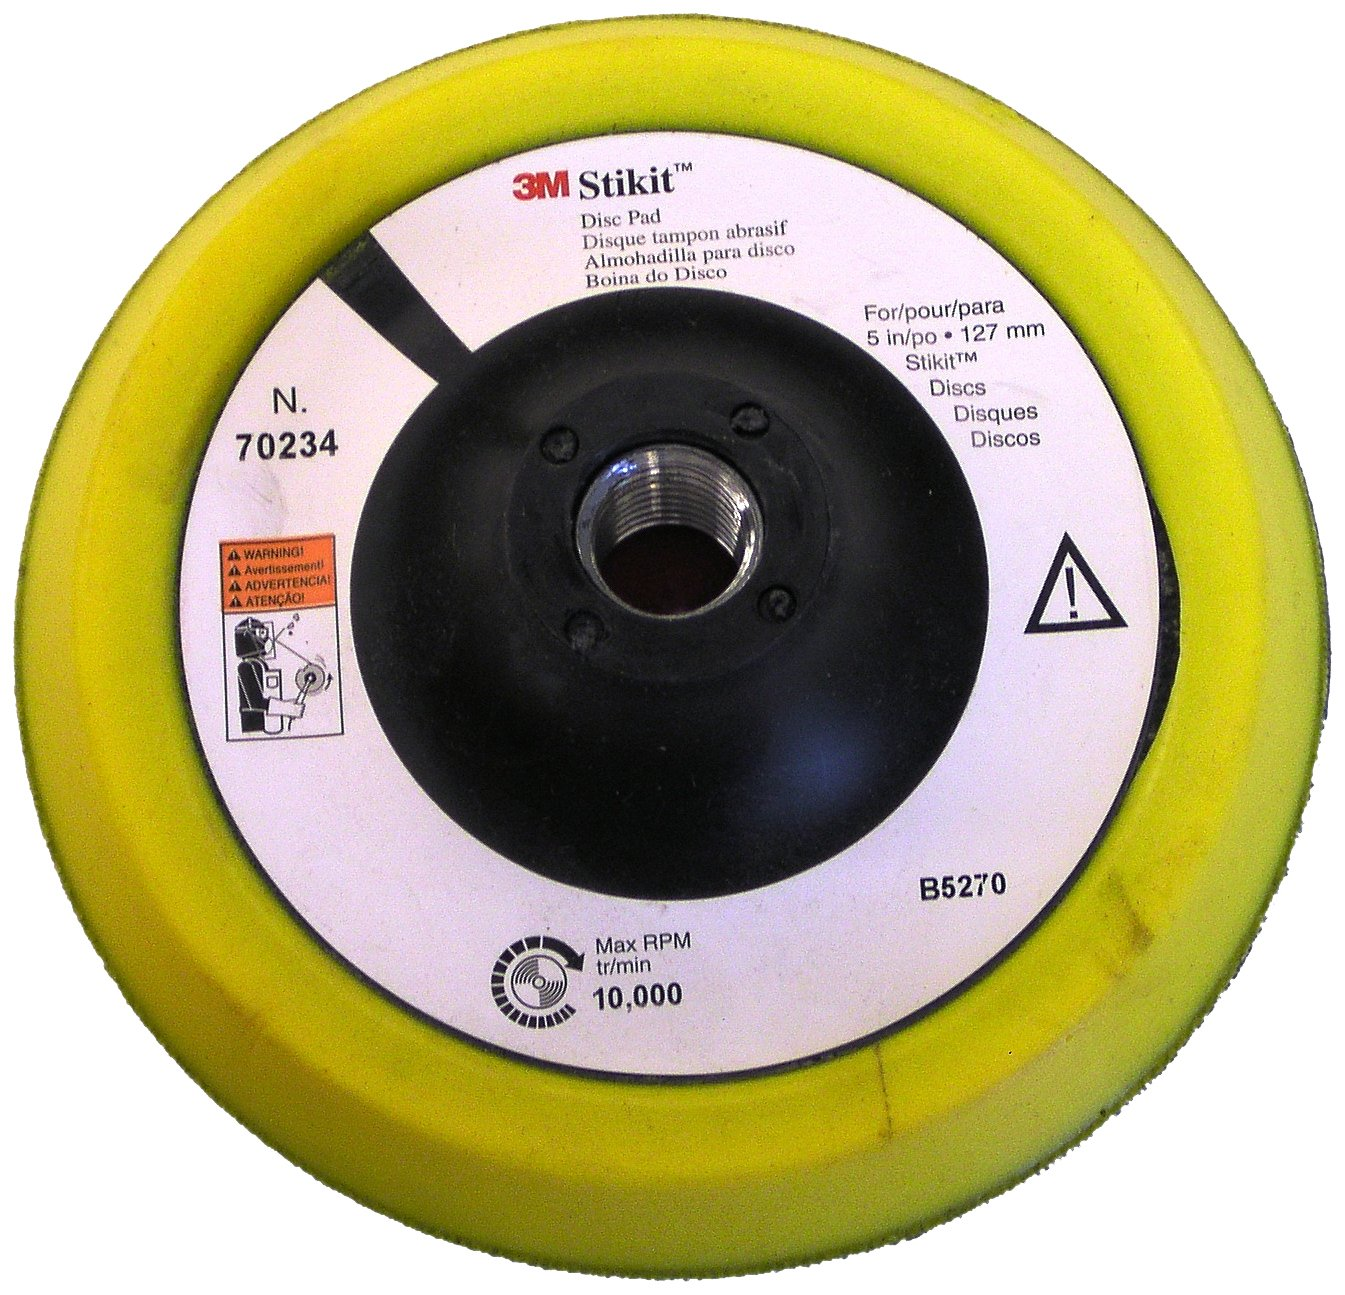 3M Stikit Disc Pad 70234, PSA, 5' Diameter, 1/2' Thick, 5/8-11 Thread, Yellow/Blue (Pack of 1) 5 Diameter 1/2 Thick